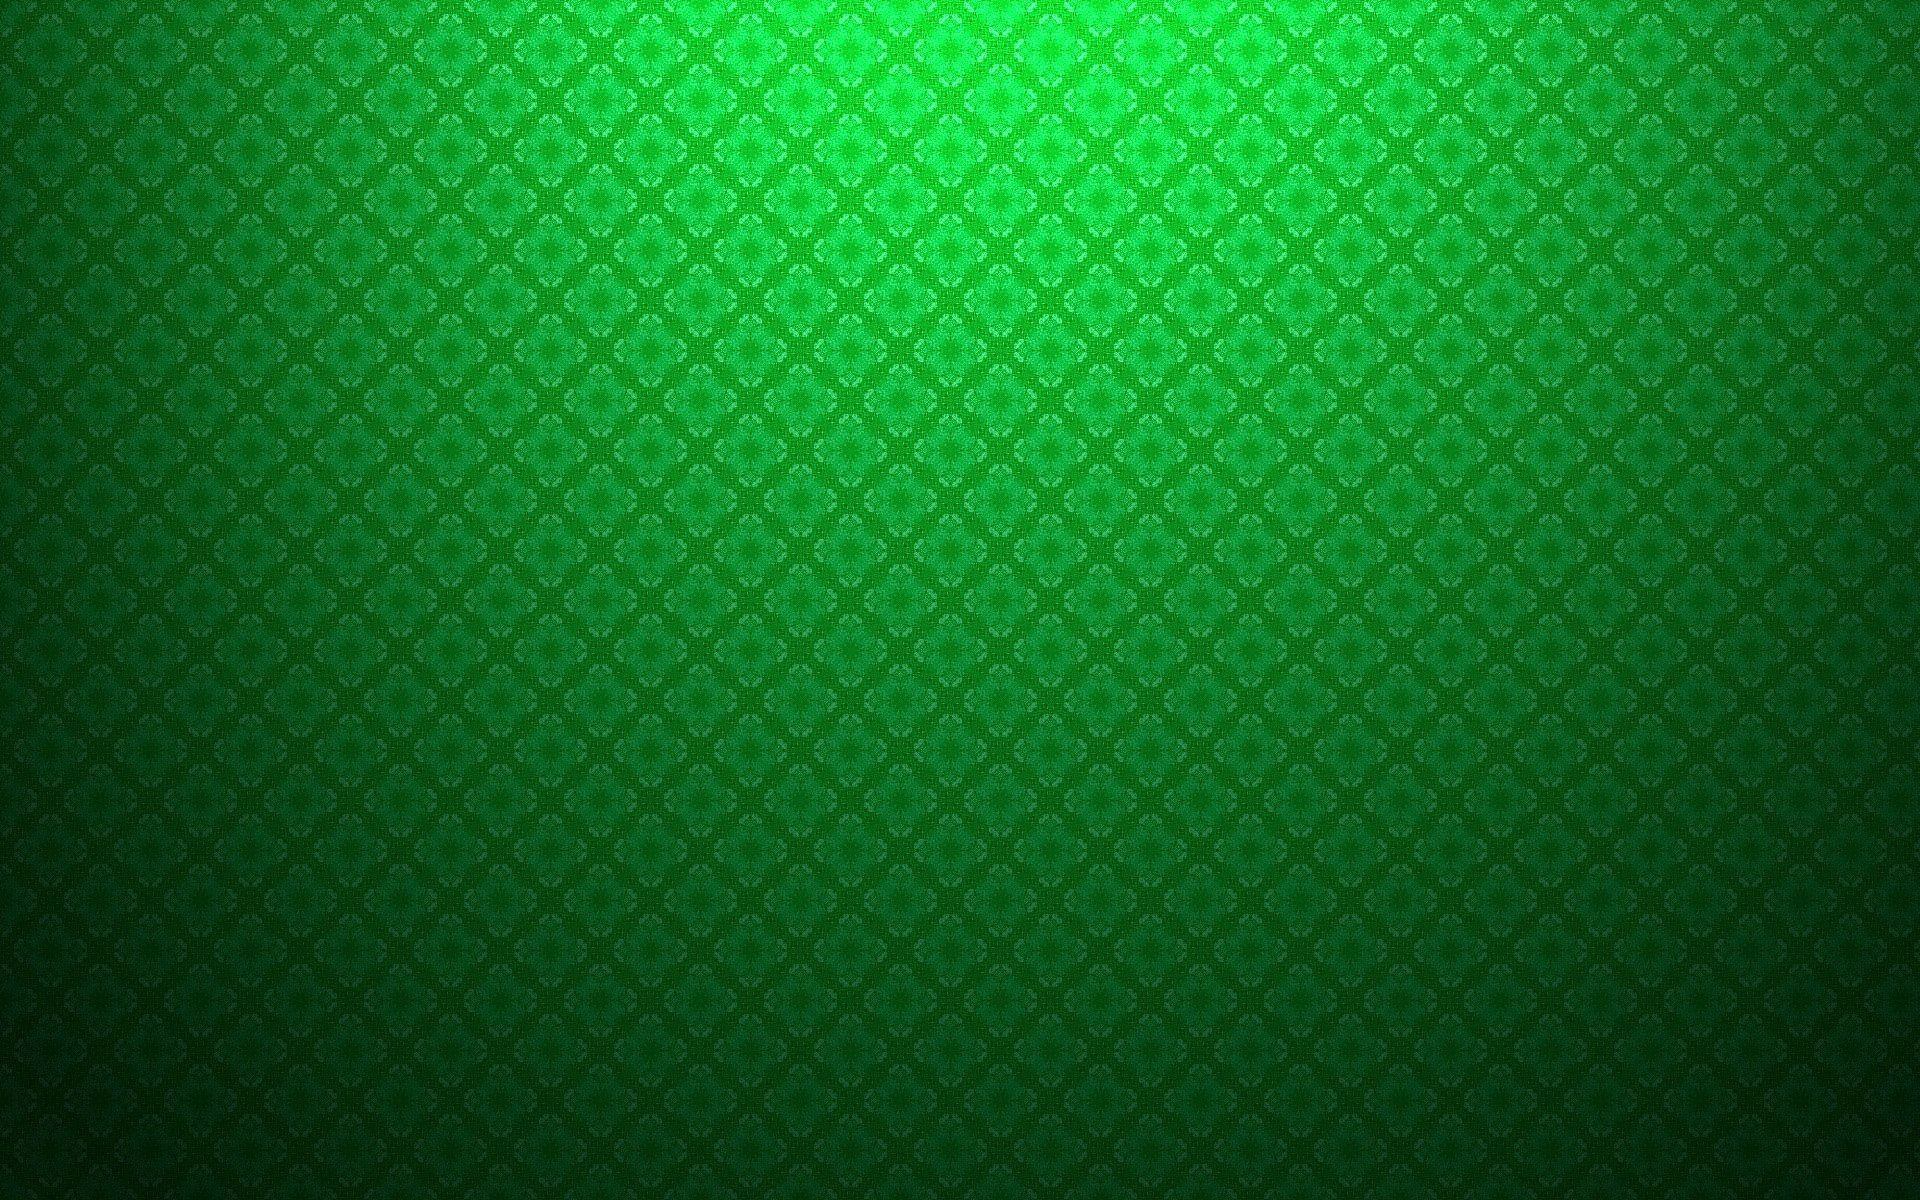 green pattern backgrounds - photo #8